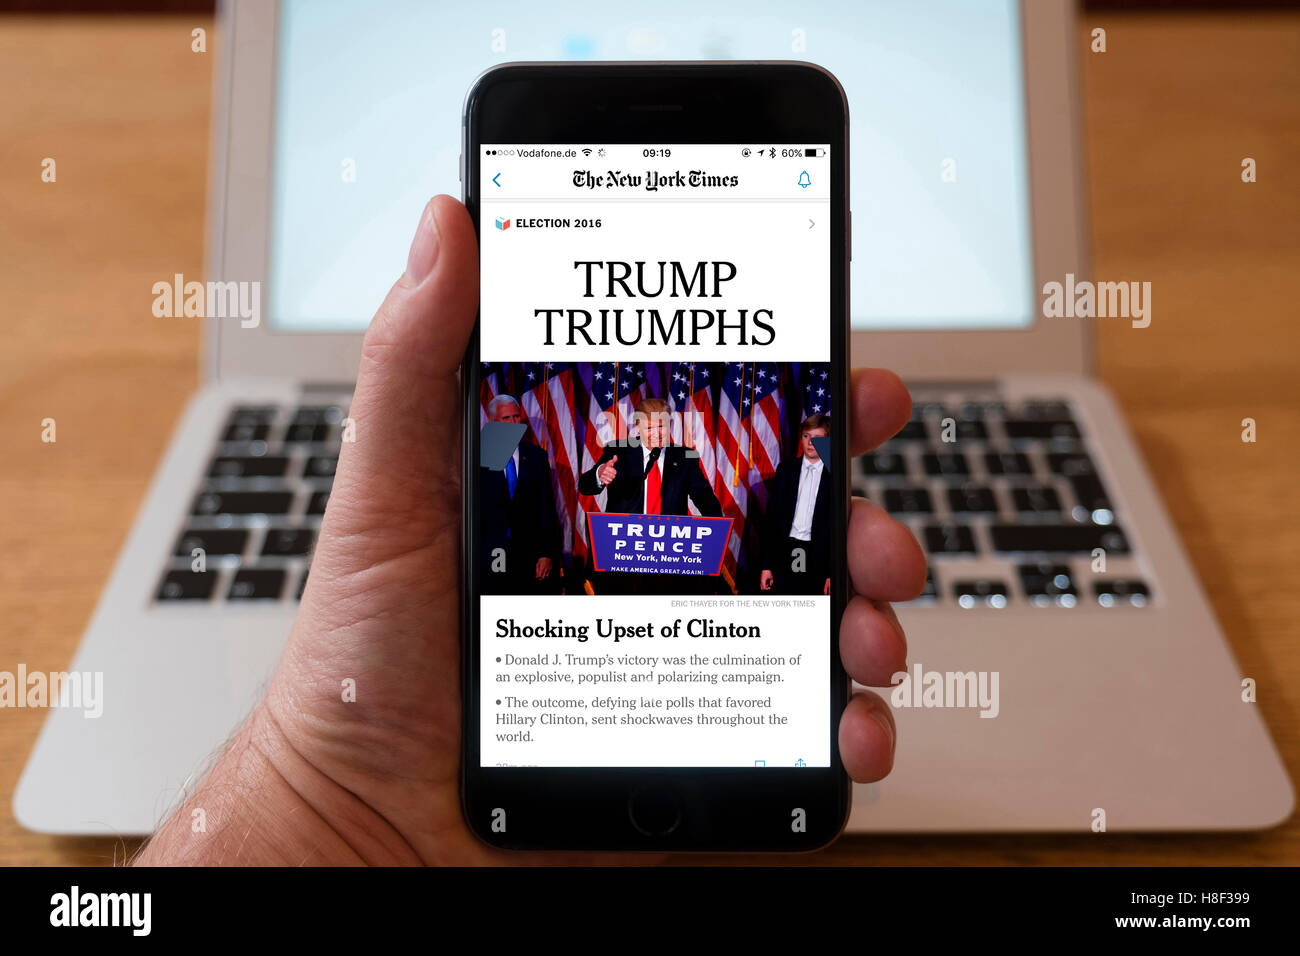 Detail of iPhone smart phone showing online mobile  newspaper front-page headline from The New York Times  following - Stock Image